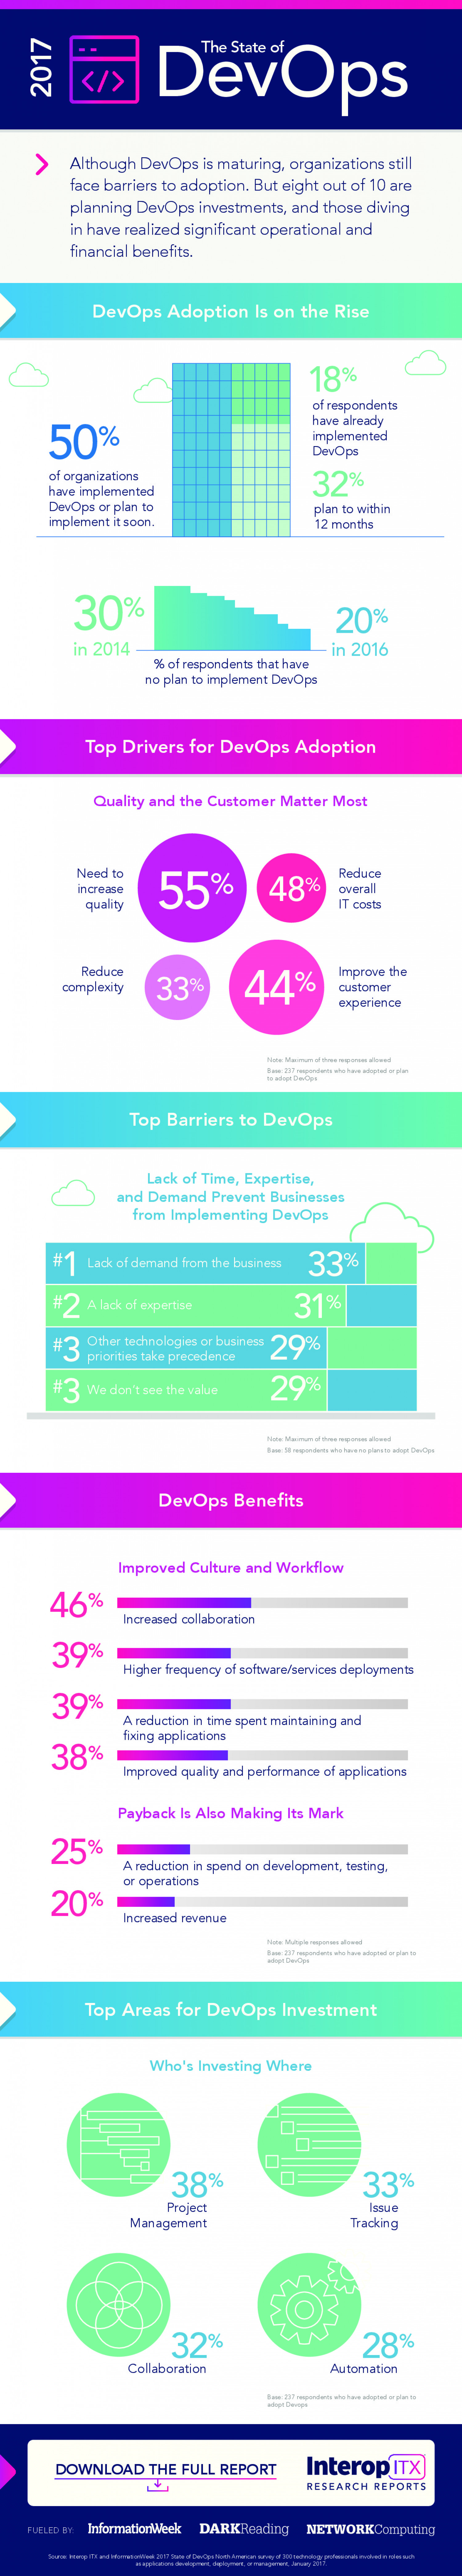 The State of DevOps in 2017 Infographic